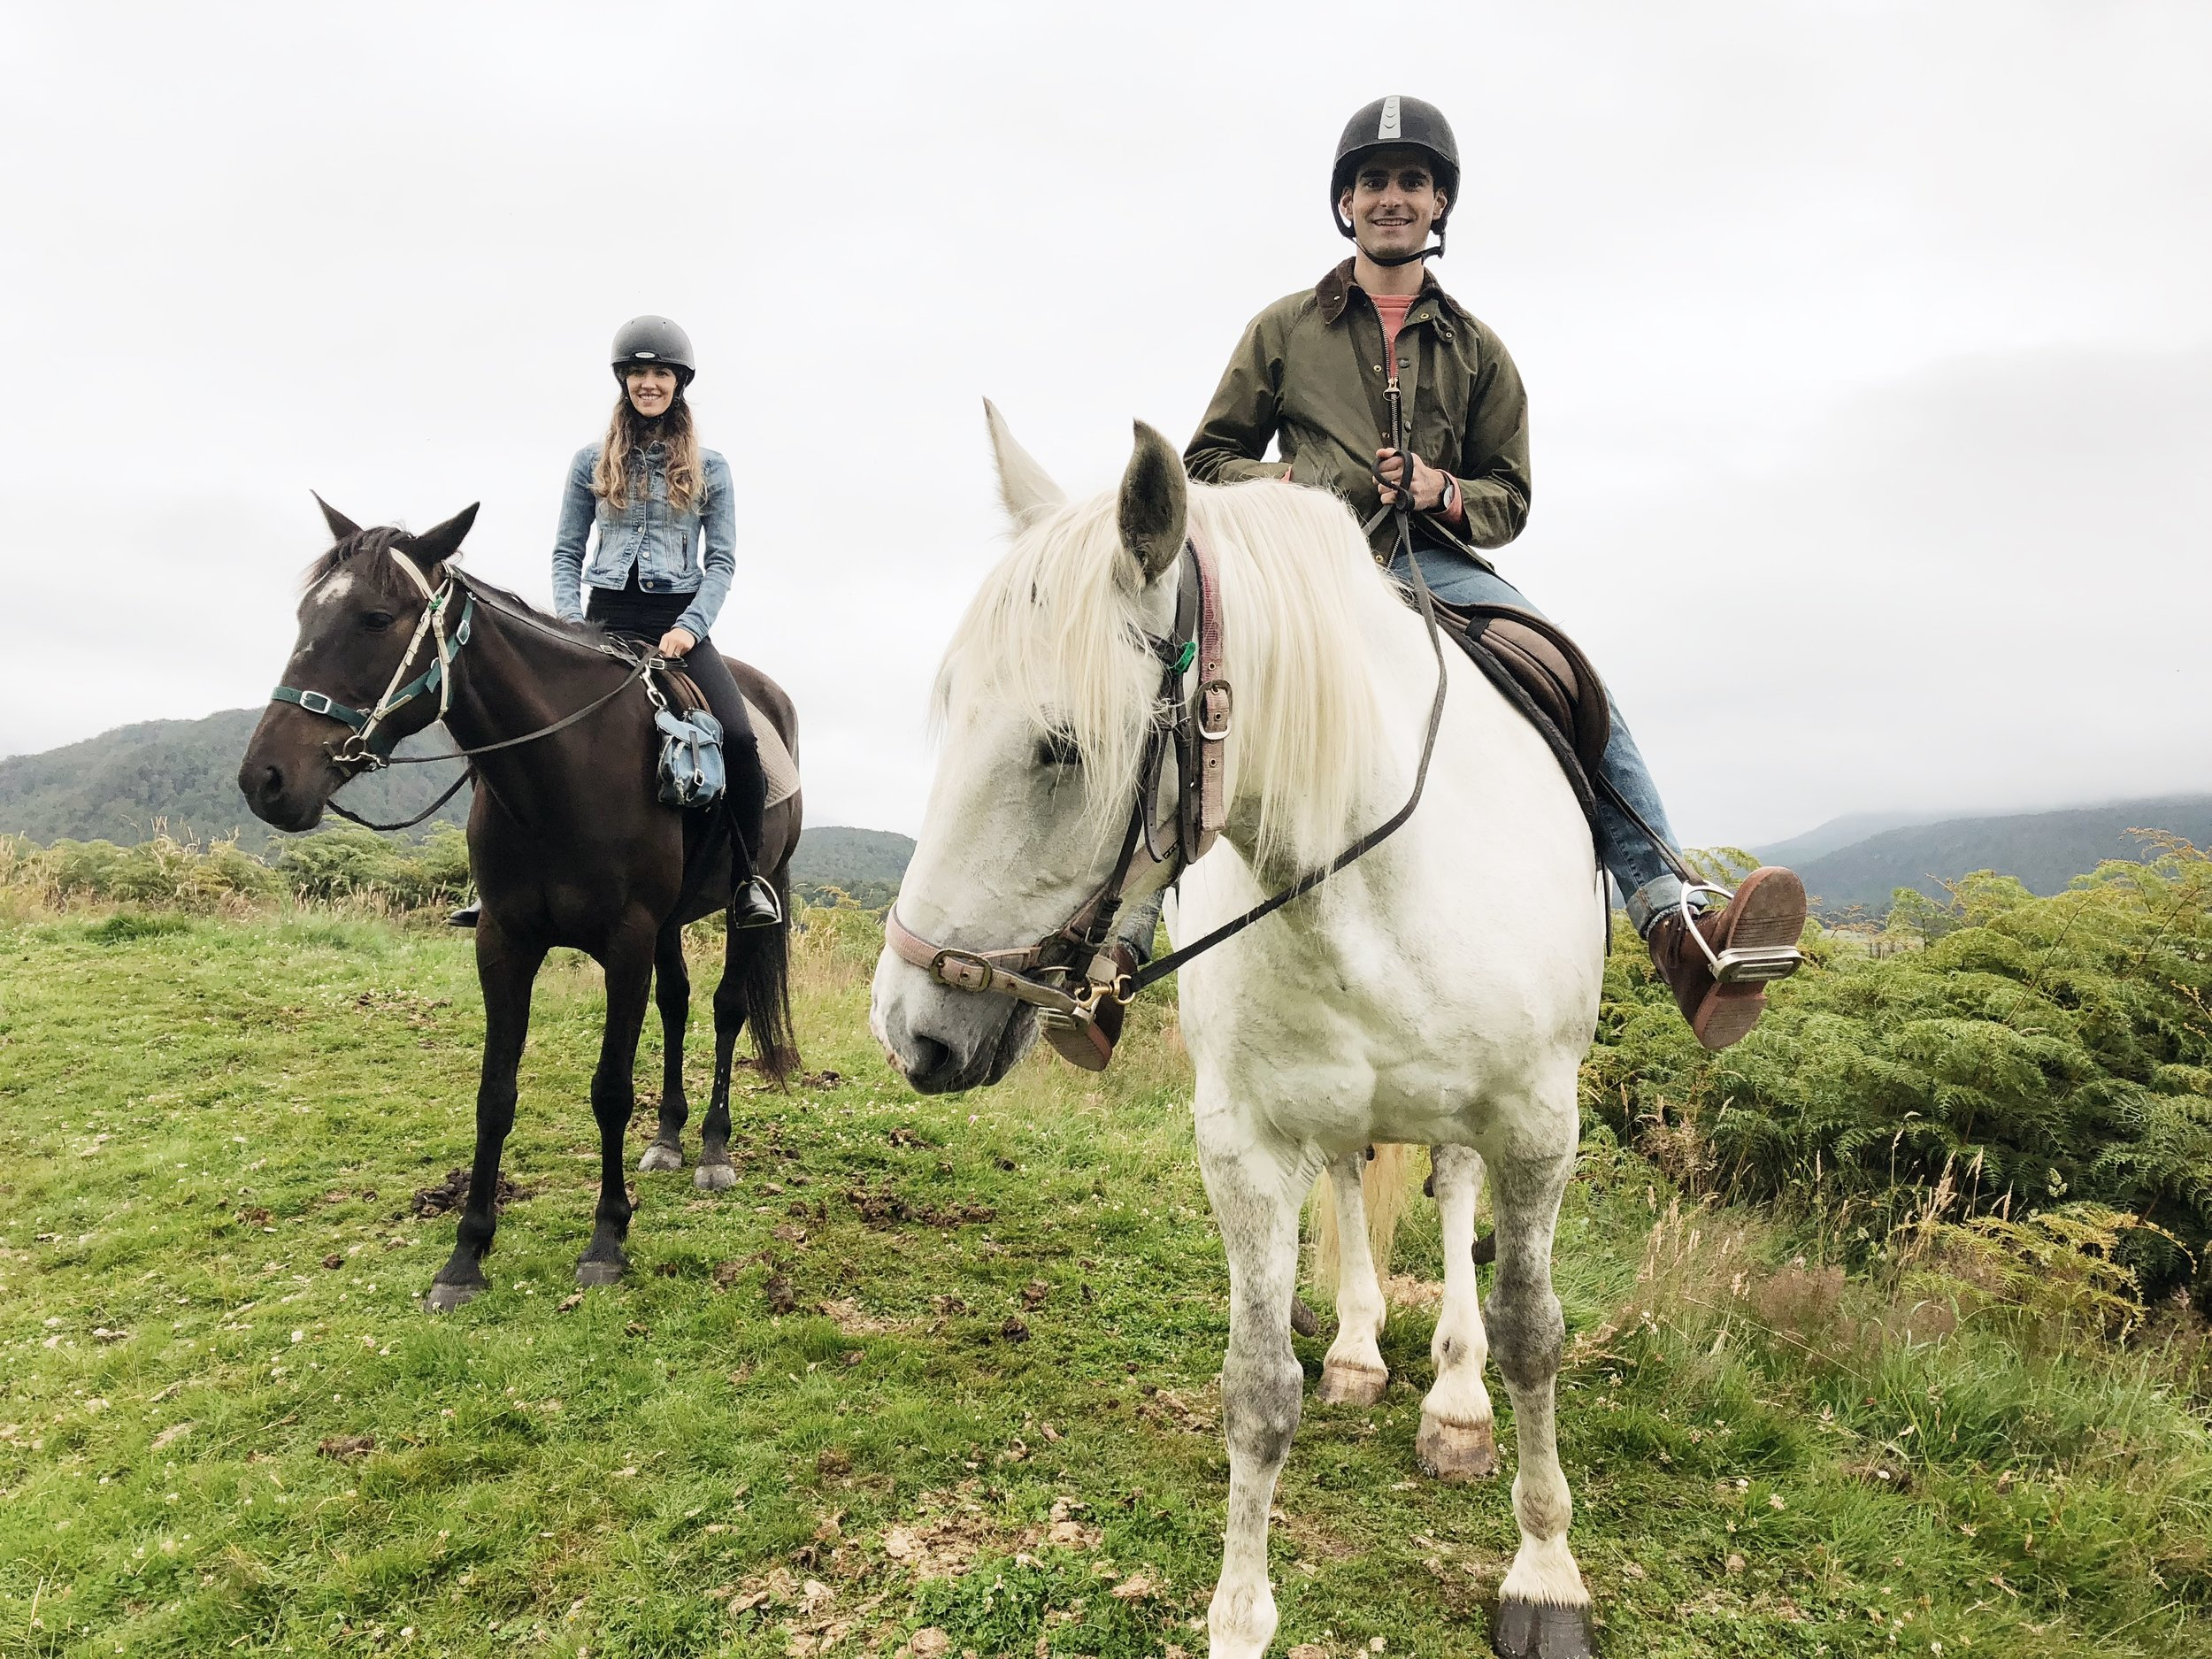 high-country-horses-photo-by-samantha-look.JPG